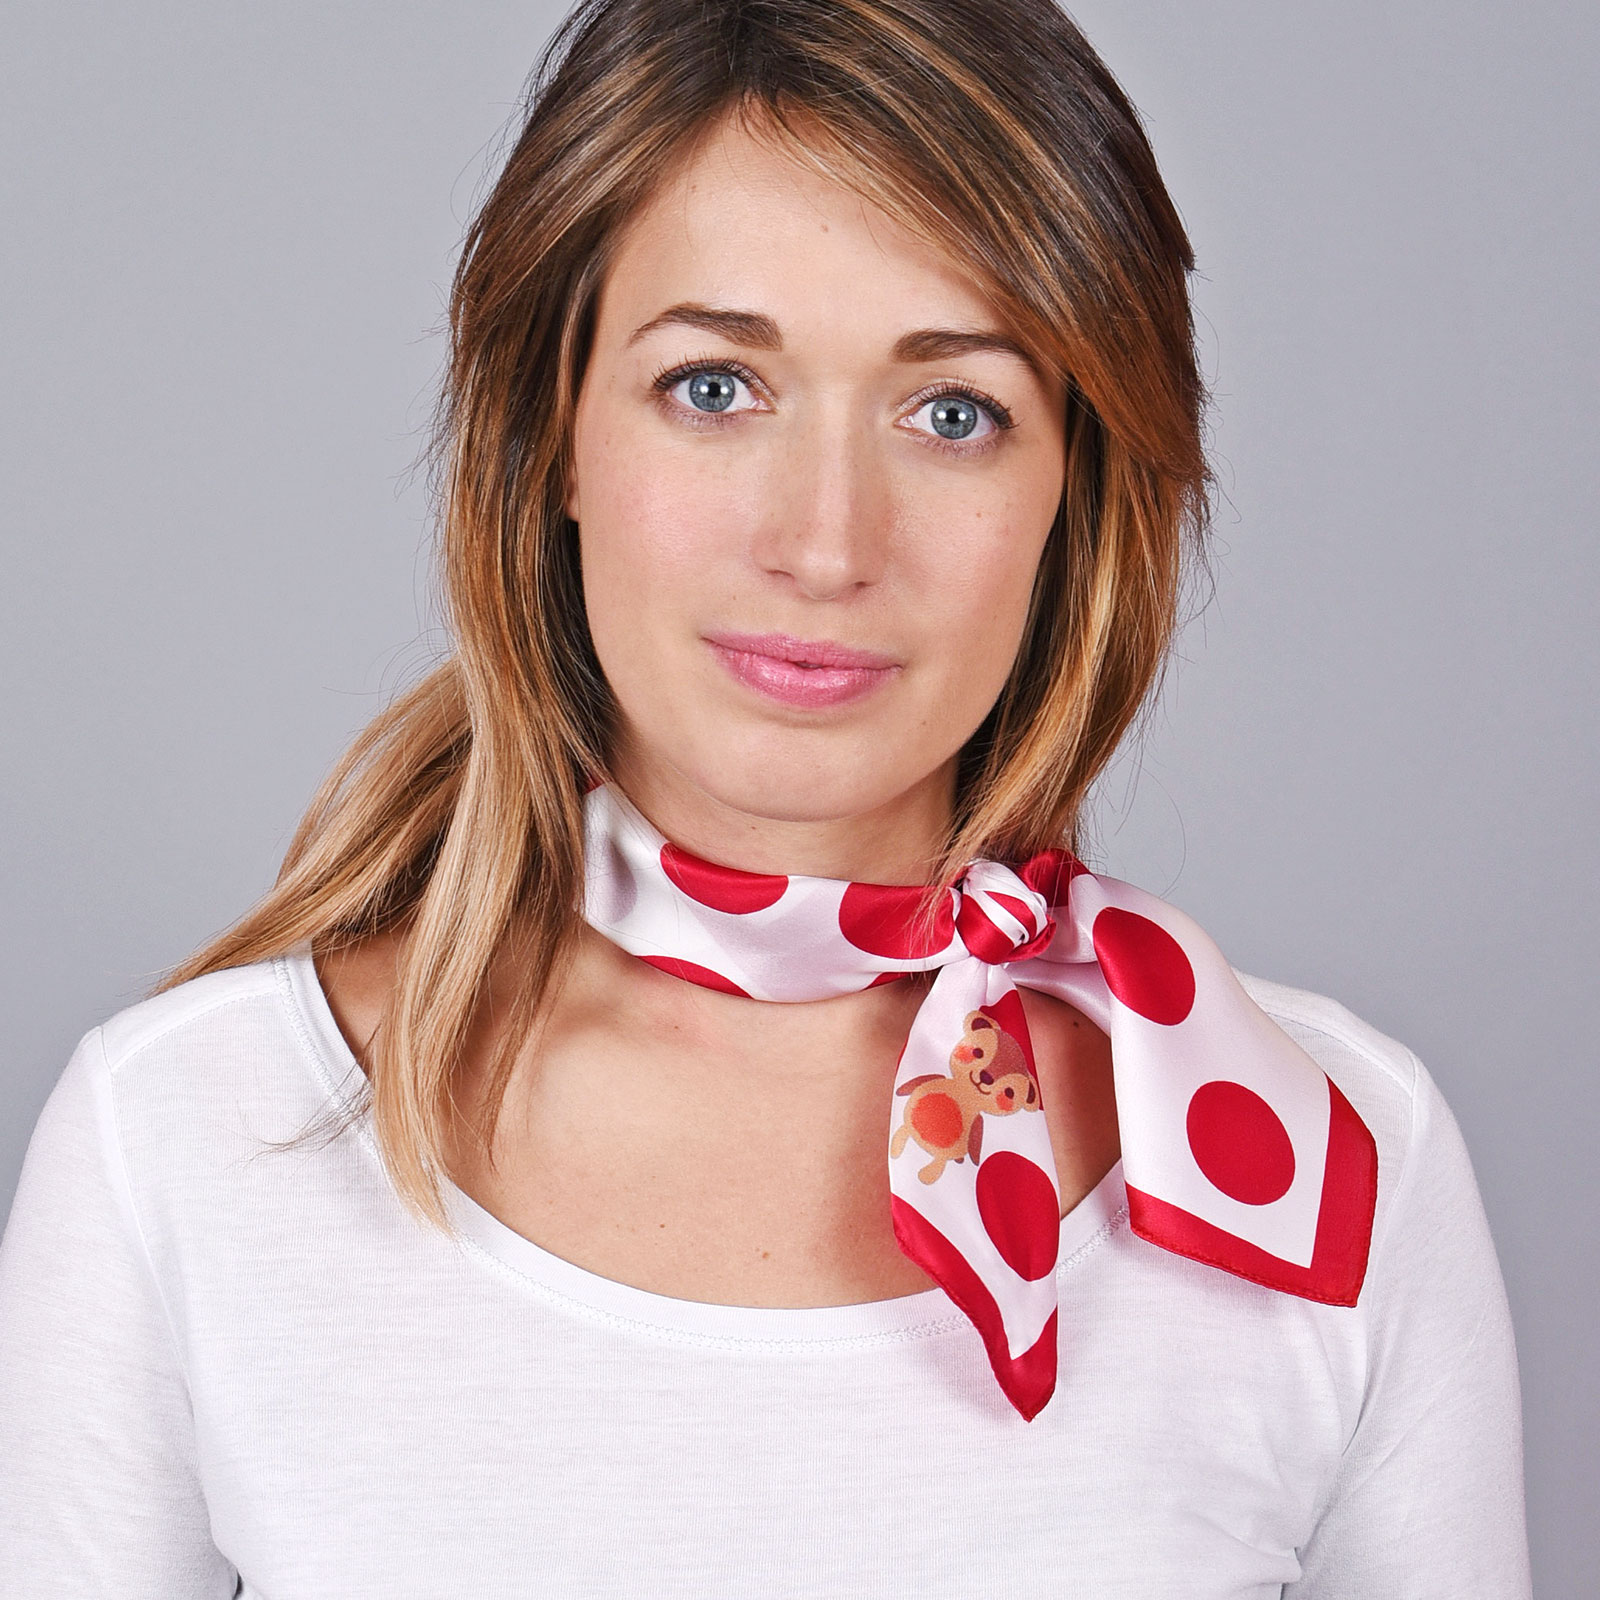 AT-04641-VF16-1-foulard-carre-soie-pois-rouges